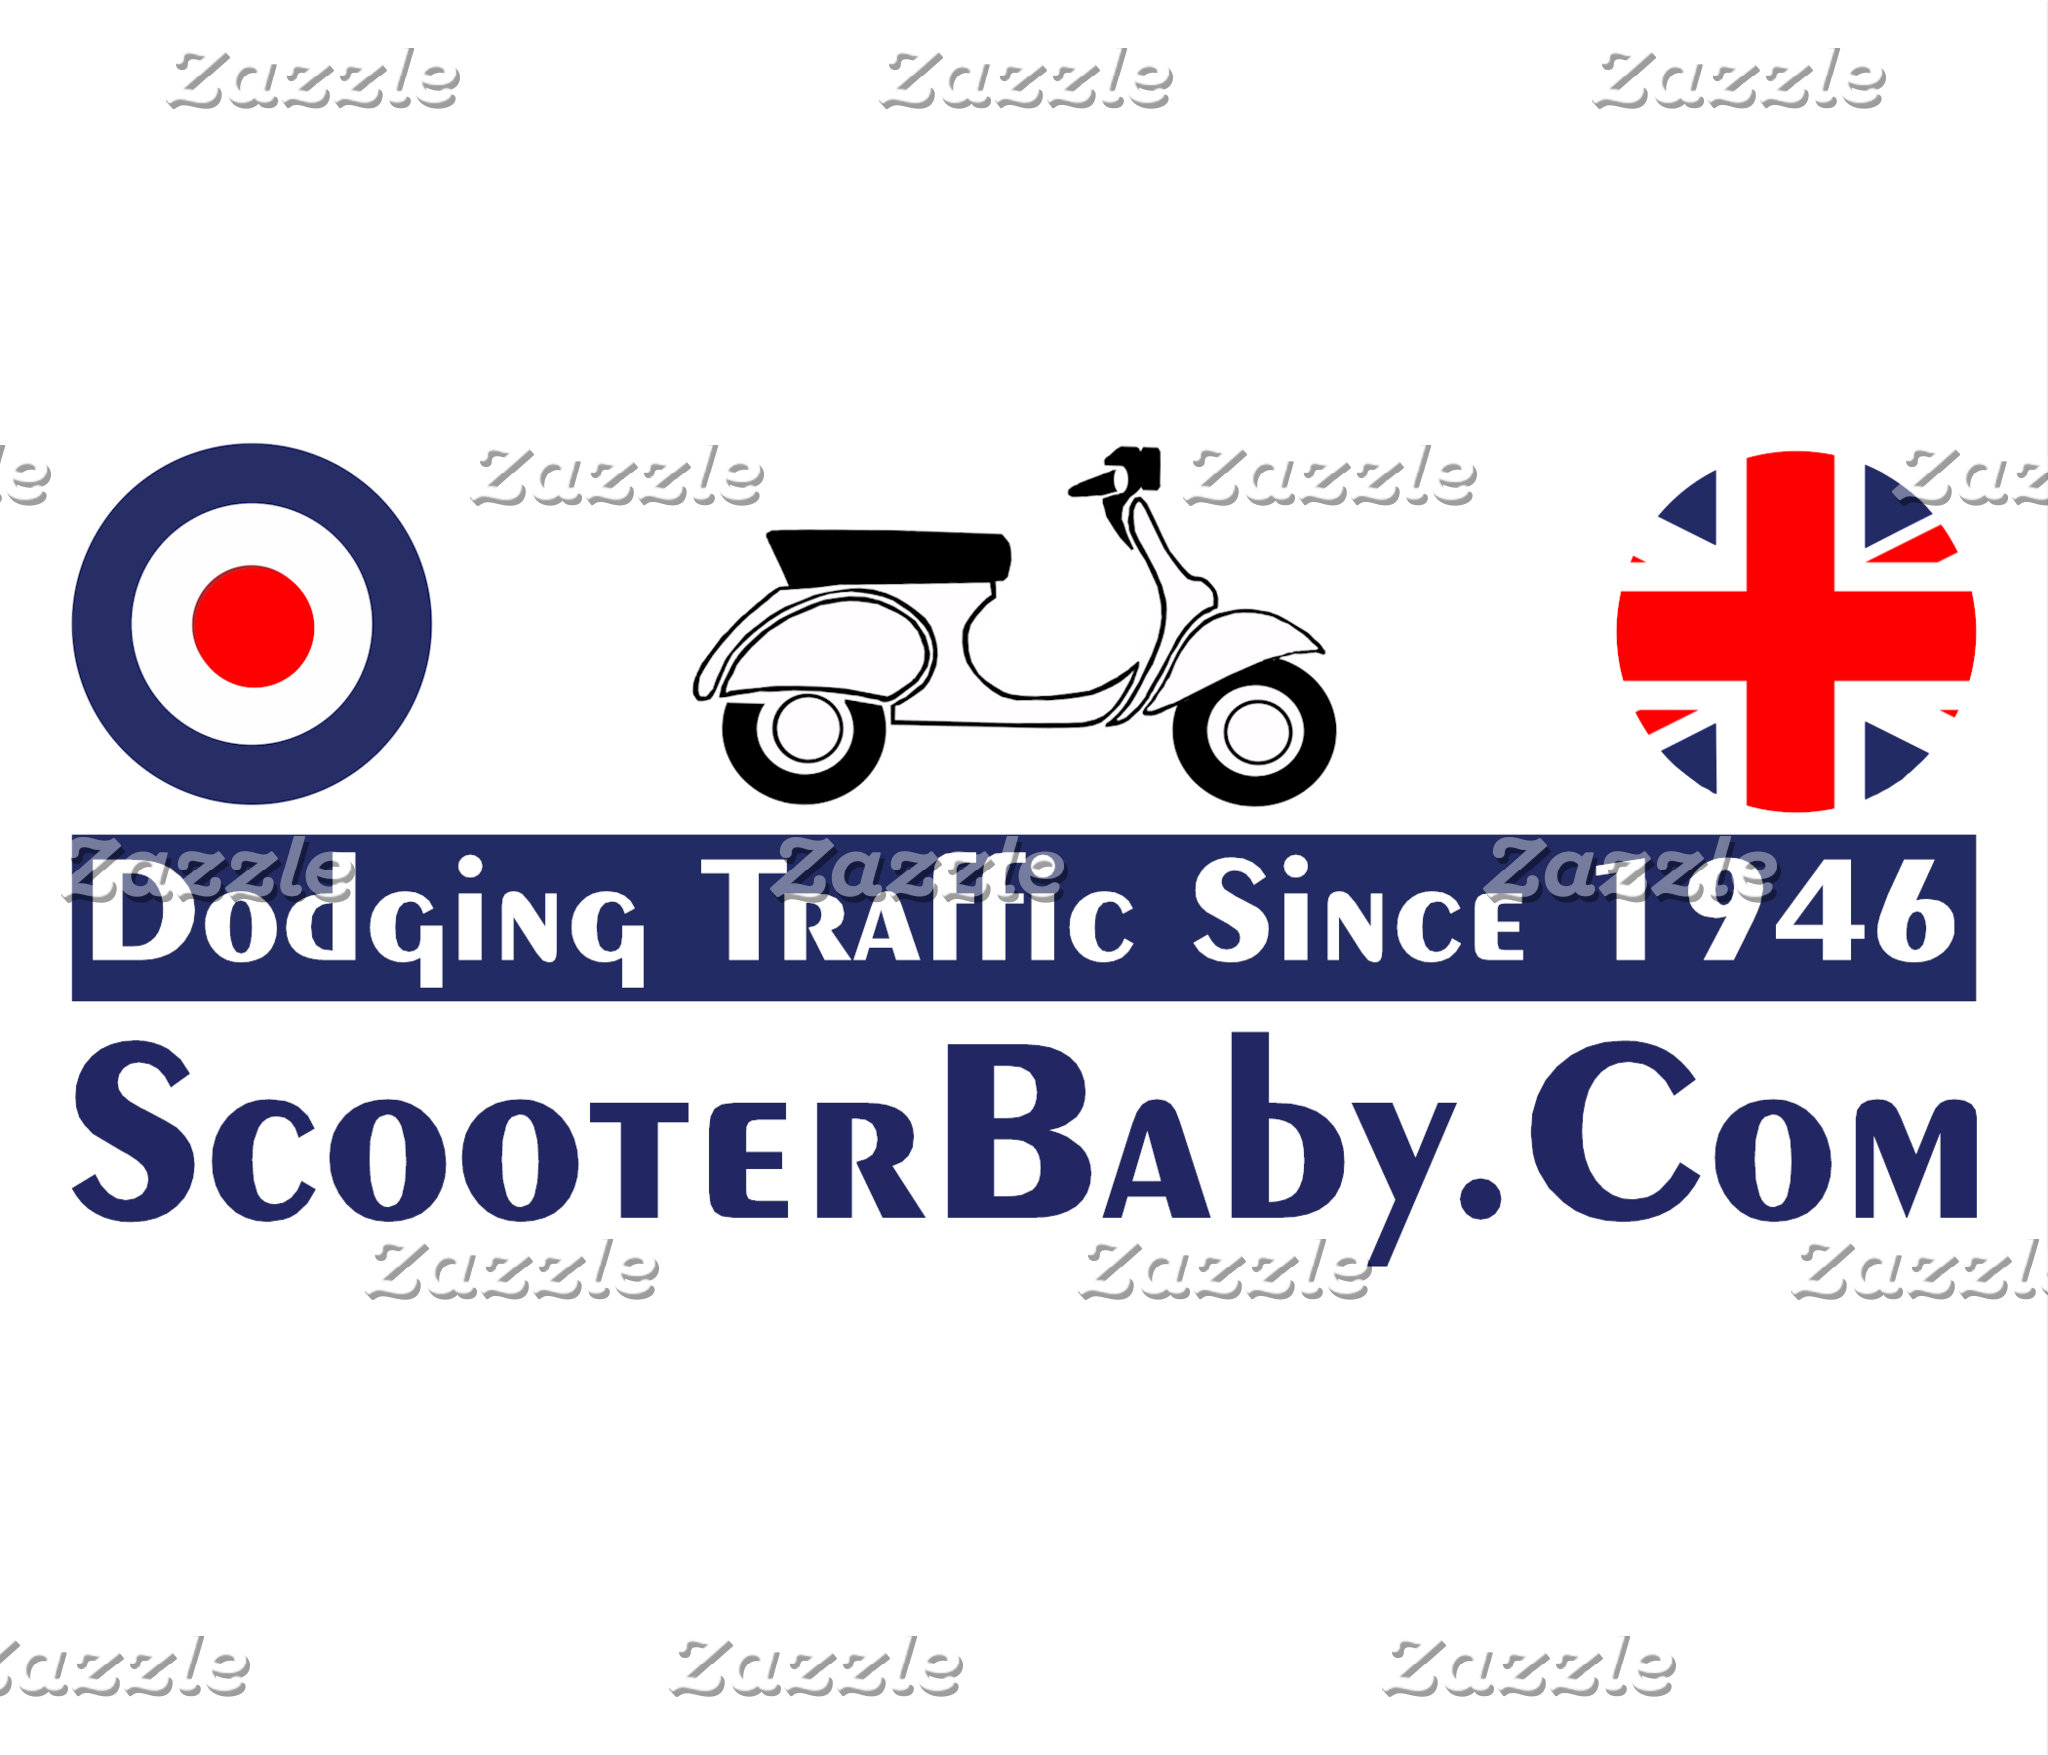 Traffic Dodging Scooter Baby